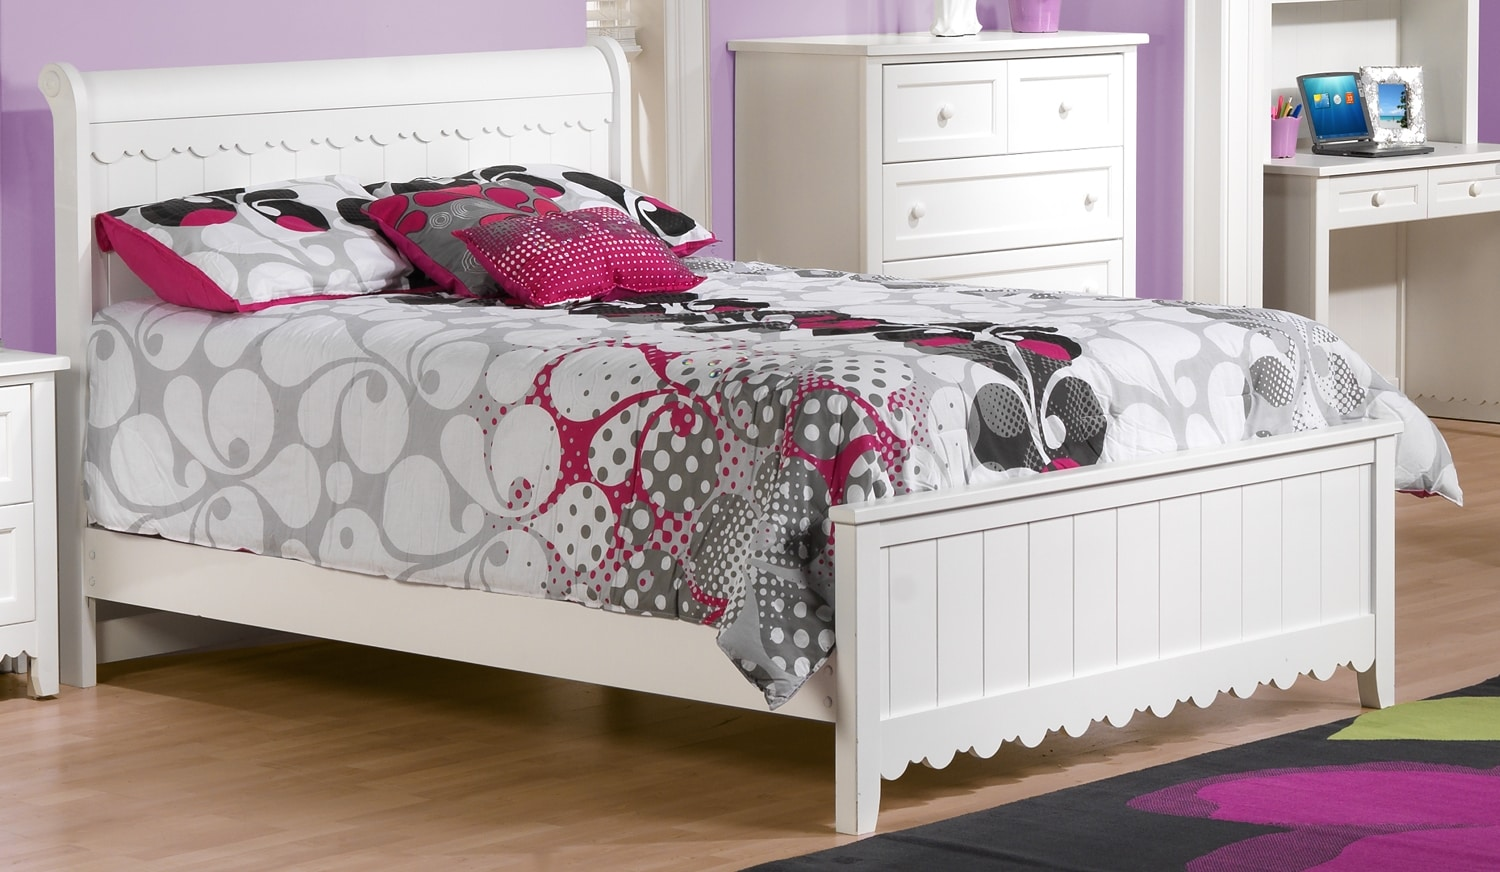 Powell White Twin Bedroom In A Box: Sweetdreams Twin Bed - White